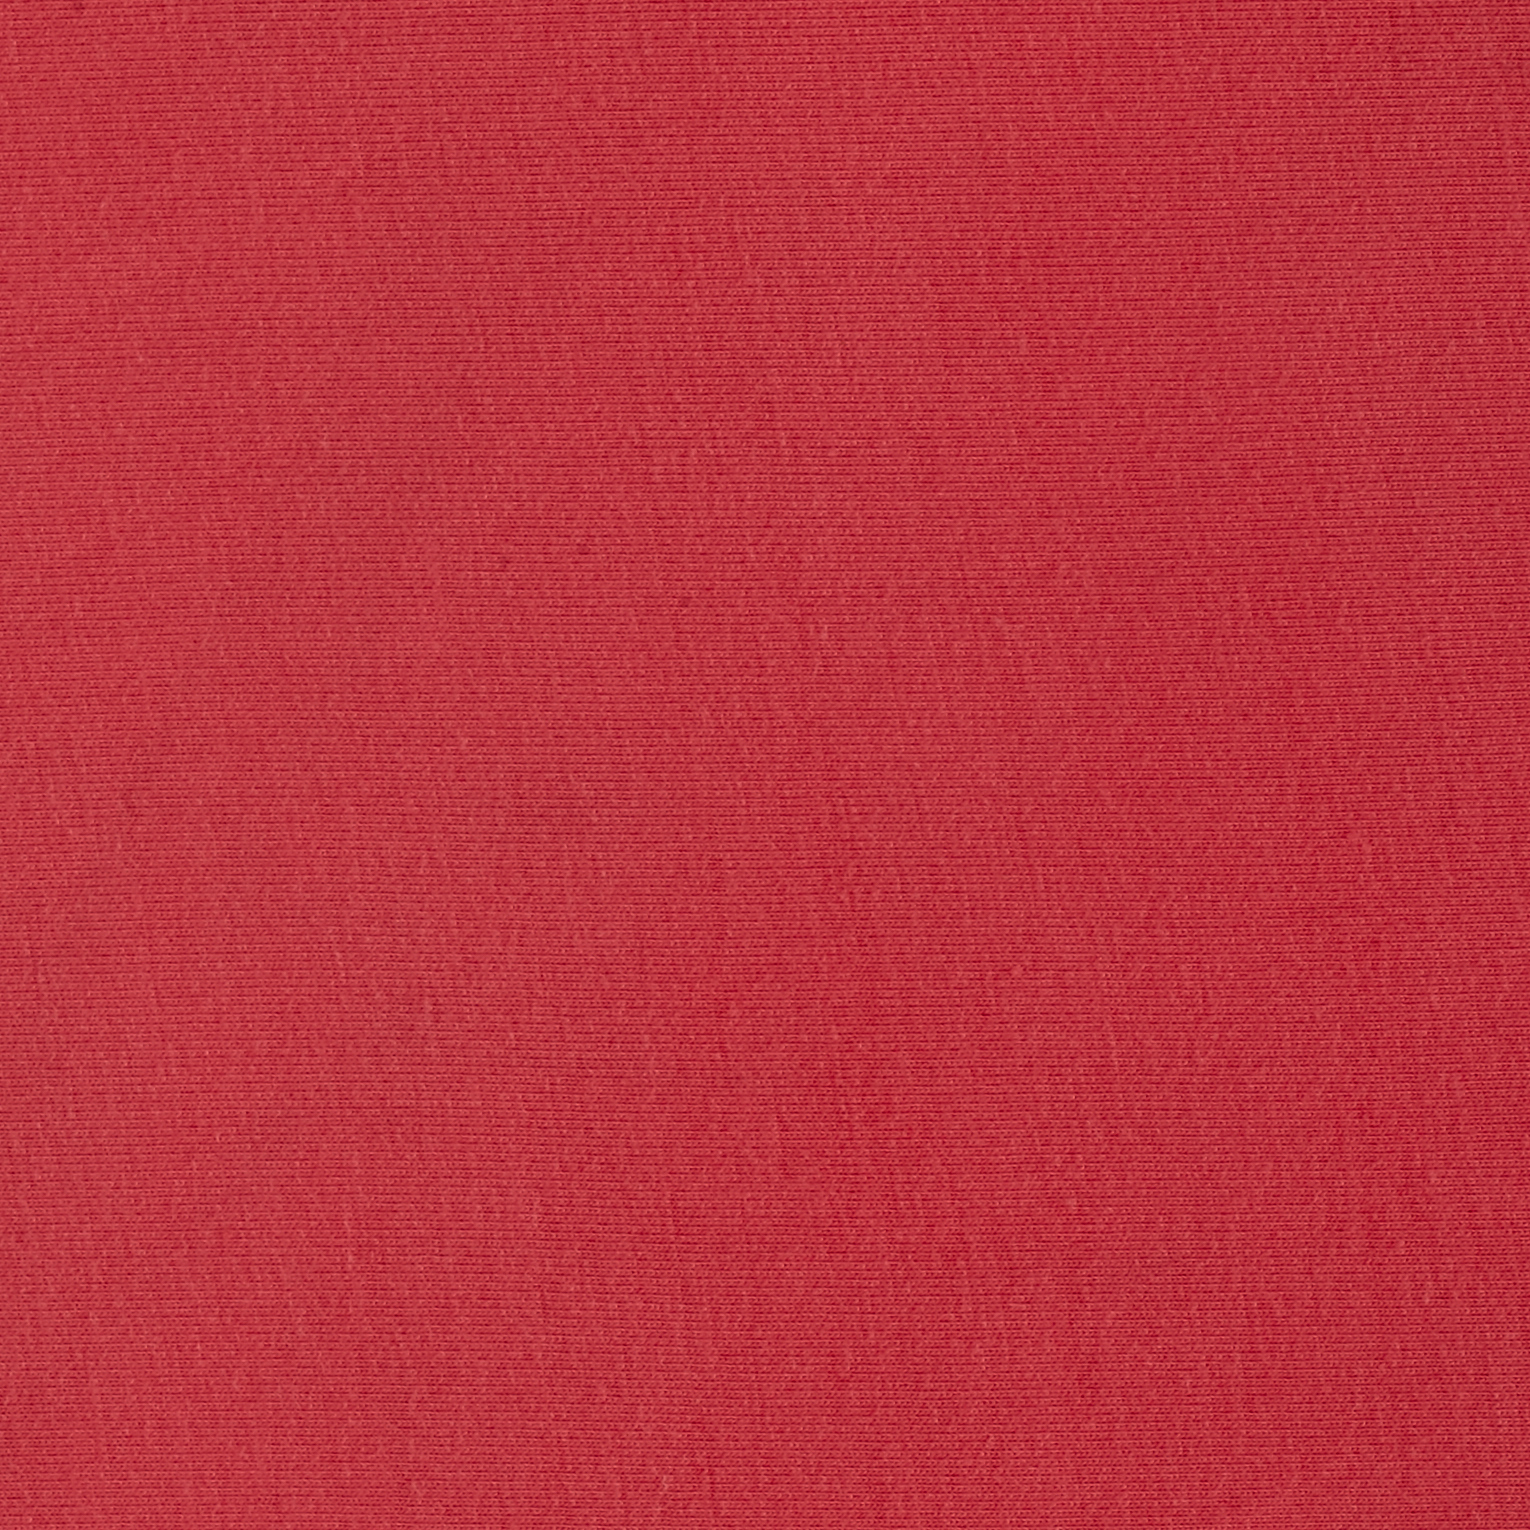 Rayon Spandex Jersey Knit Coral Fabric